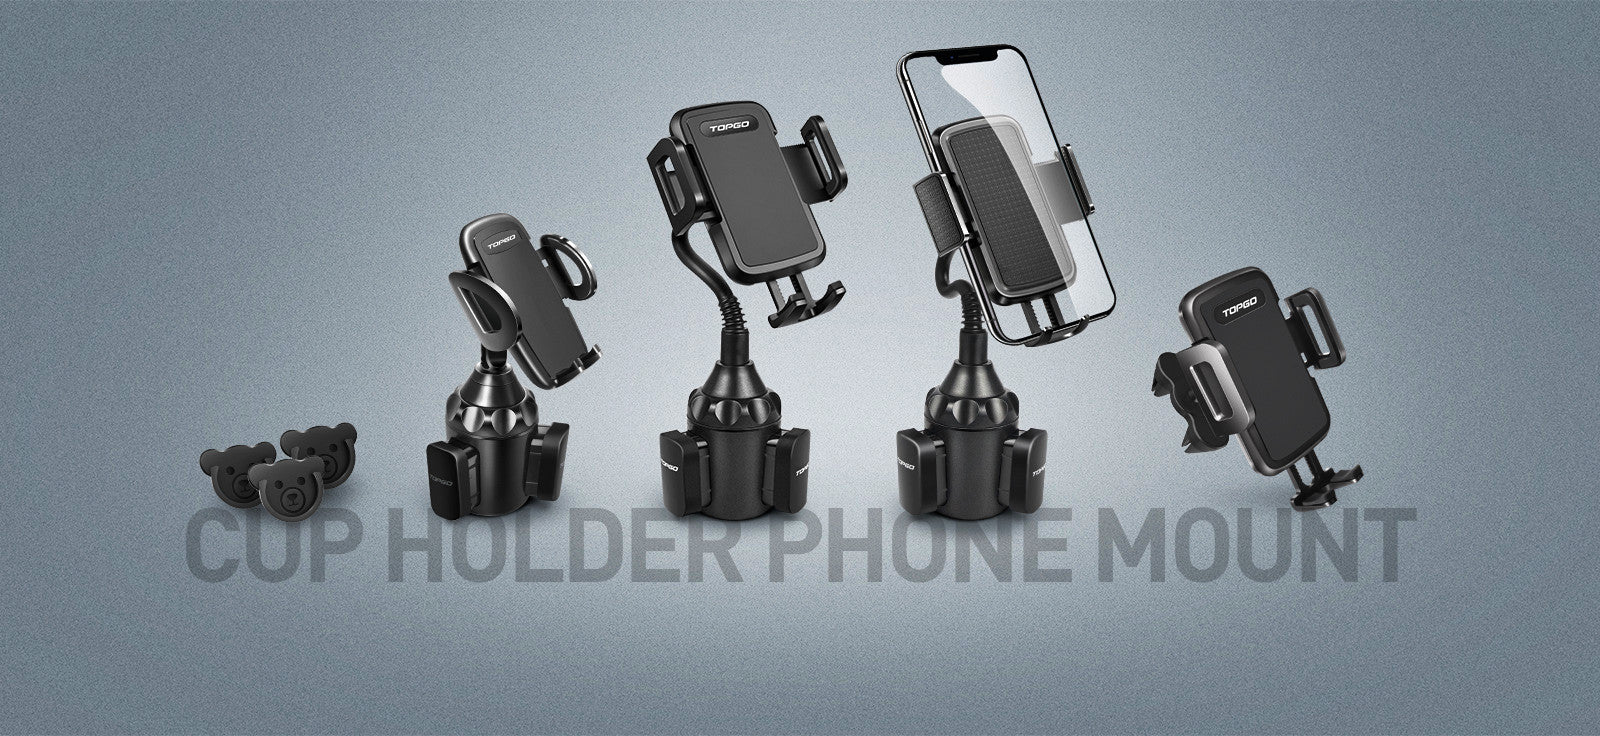 cup phone holder, cup holder phone holders, cup holder phone mounts, cup phone holder for car